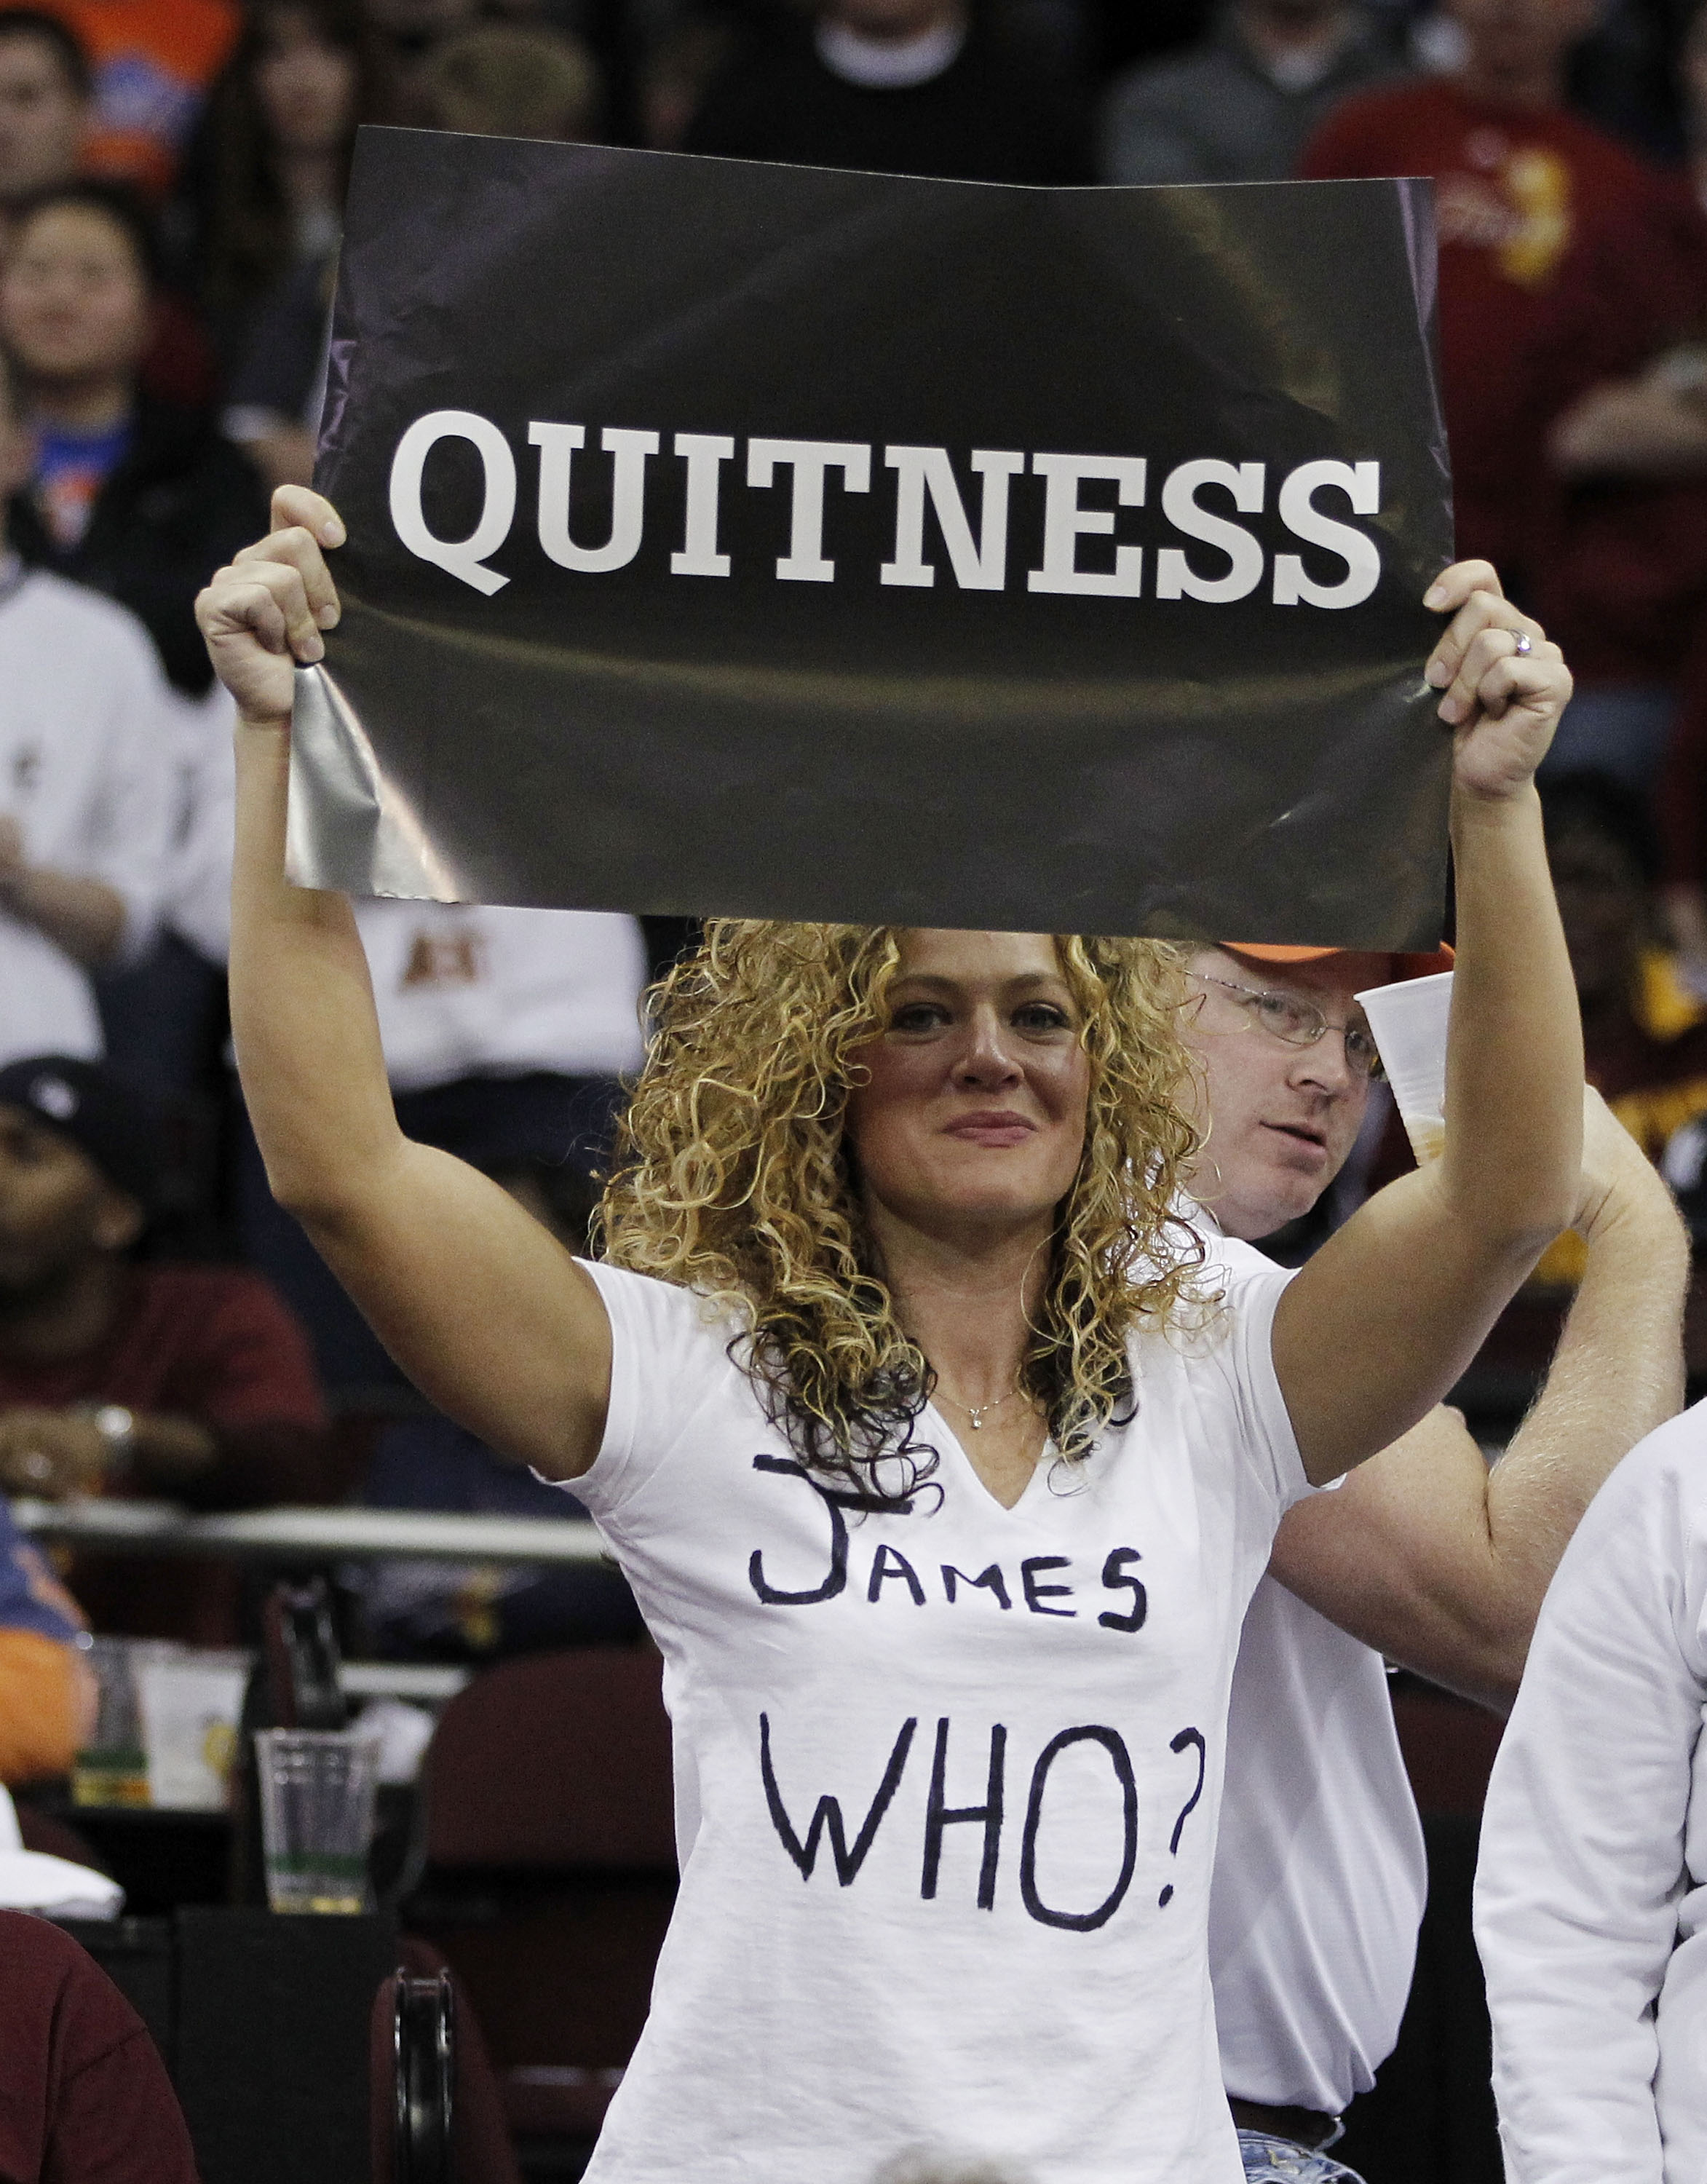 CLEVELAND, OH - DECEMBER 02: A Fan holds up sign during a game between the Cleveland Cavaliers playing the Miami Heat and Cleveland Cavliers at Quicken Loans Arena on December 2, 2010 in Cleveland, Ohio. NOTE TO USER: User expressly acknowledges and agree